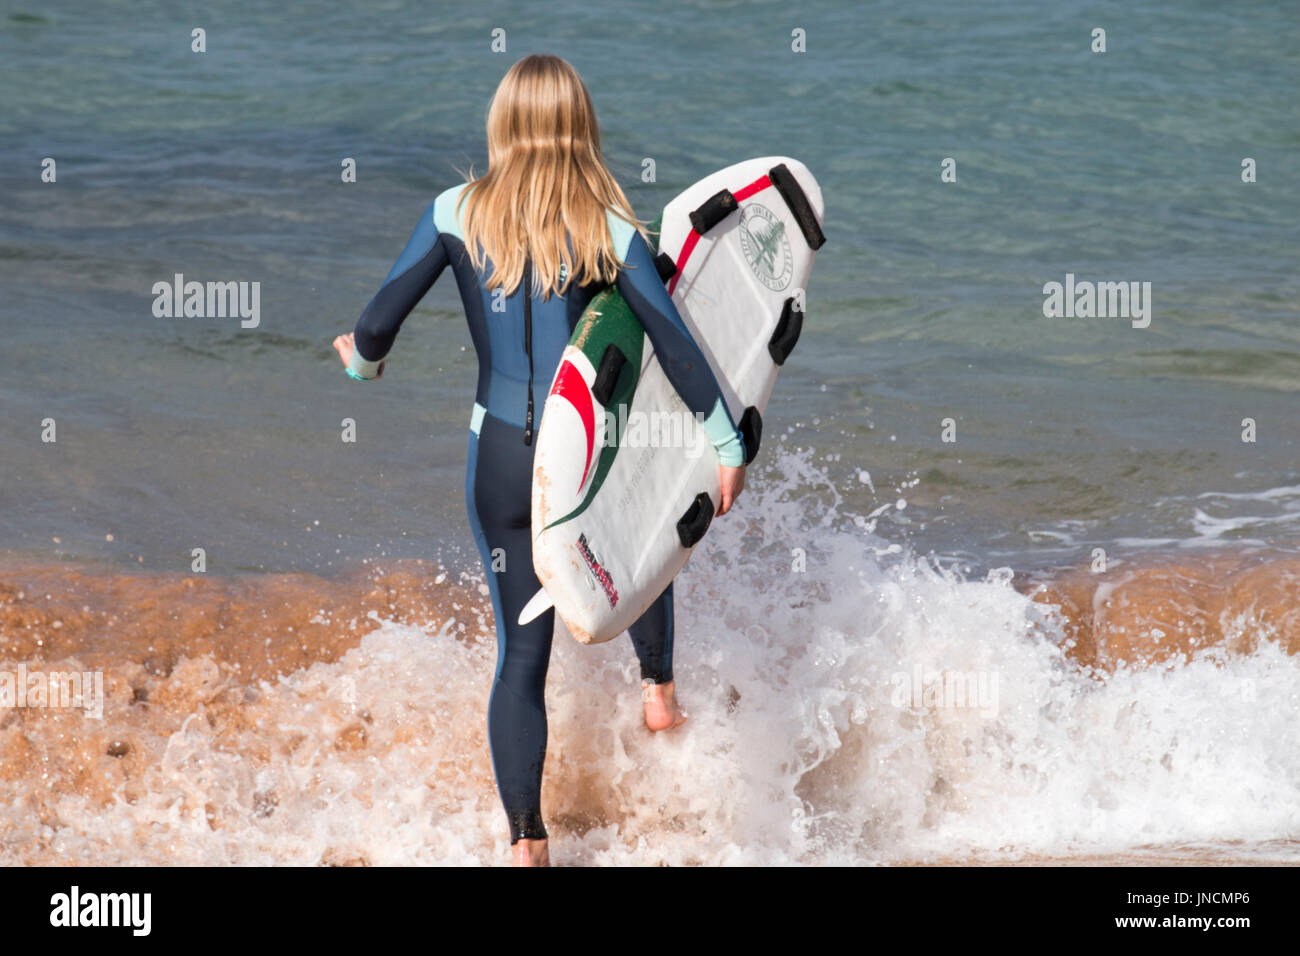 Young woman girl carrying her surfboard out to sea for a surf, Sydney,Australia - Stock Image